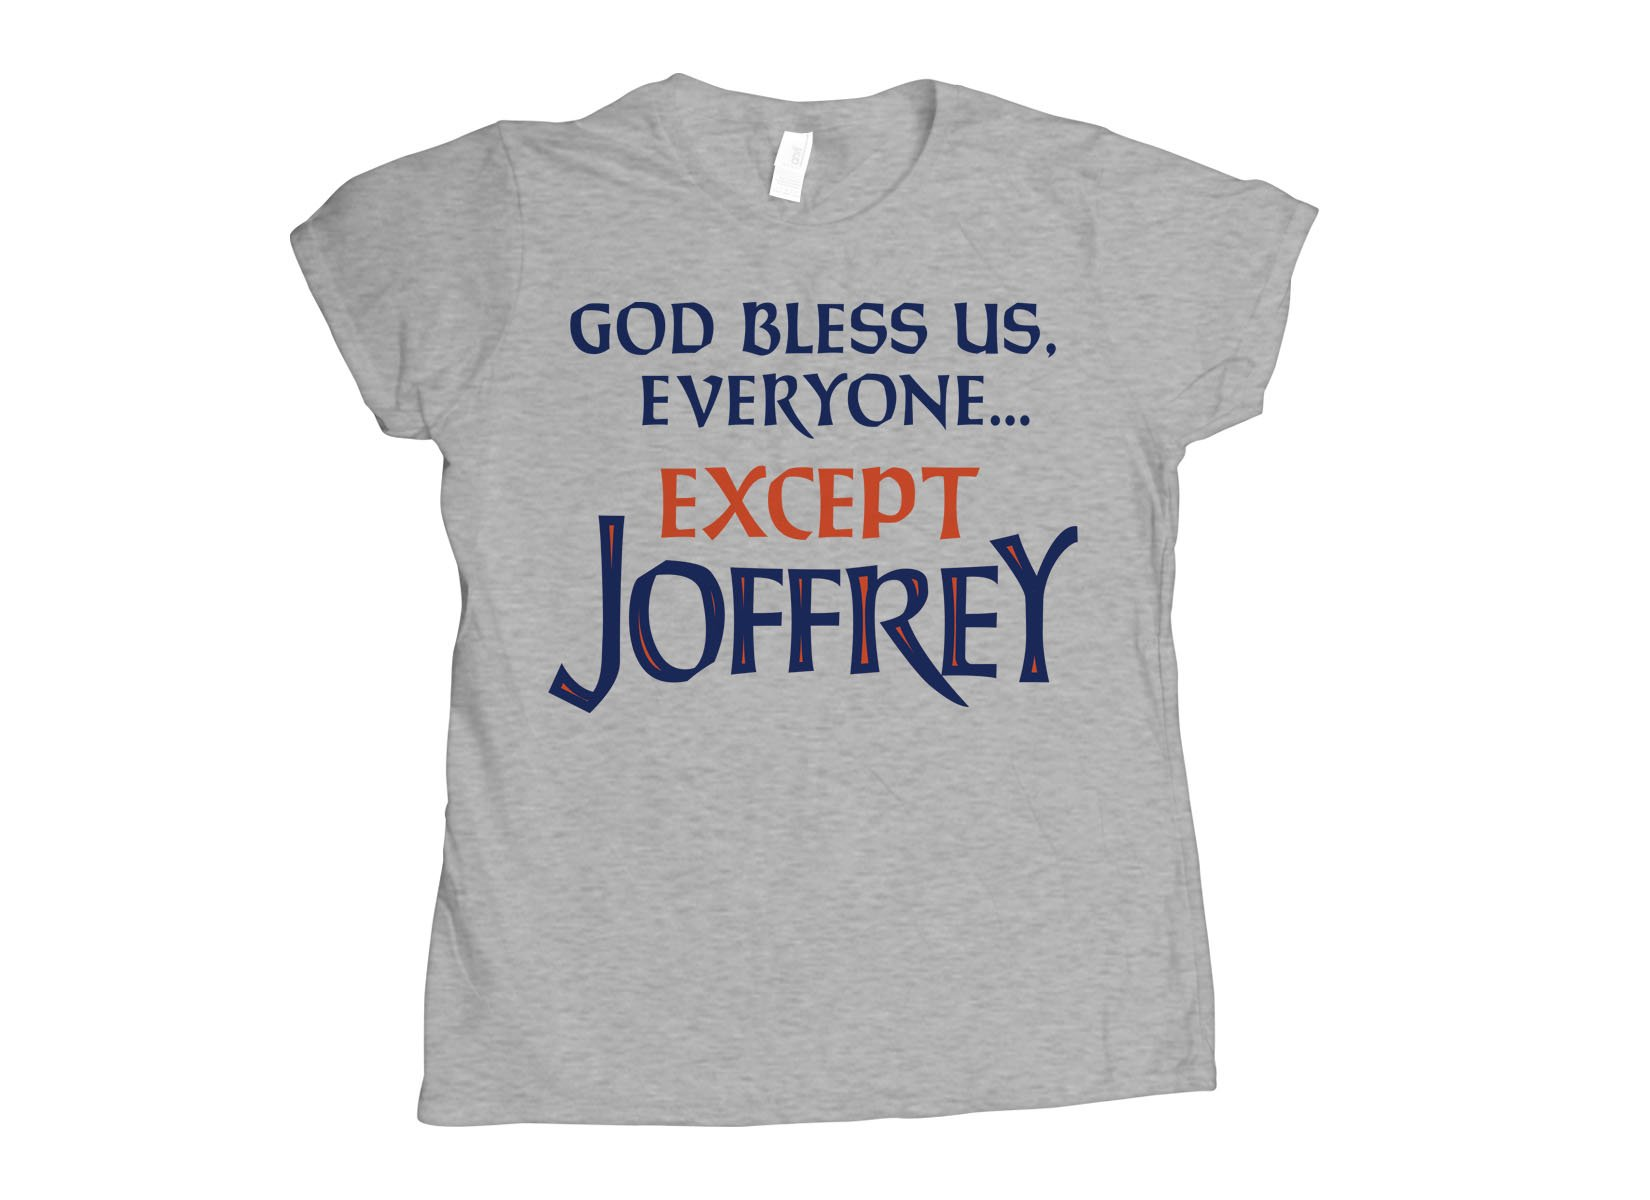 God Bless Us, Everyone. Except Joffrey on Womens T-Shirt